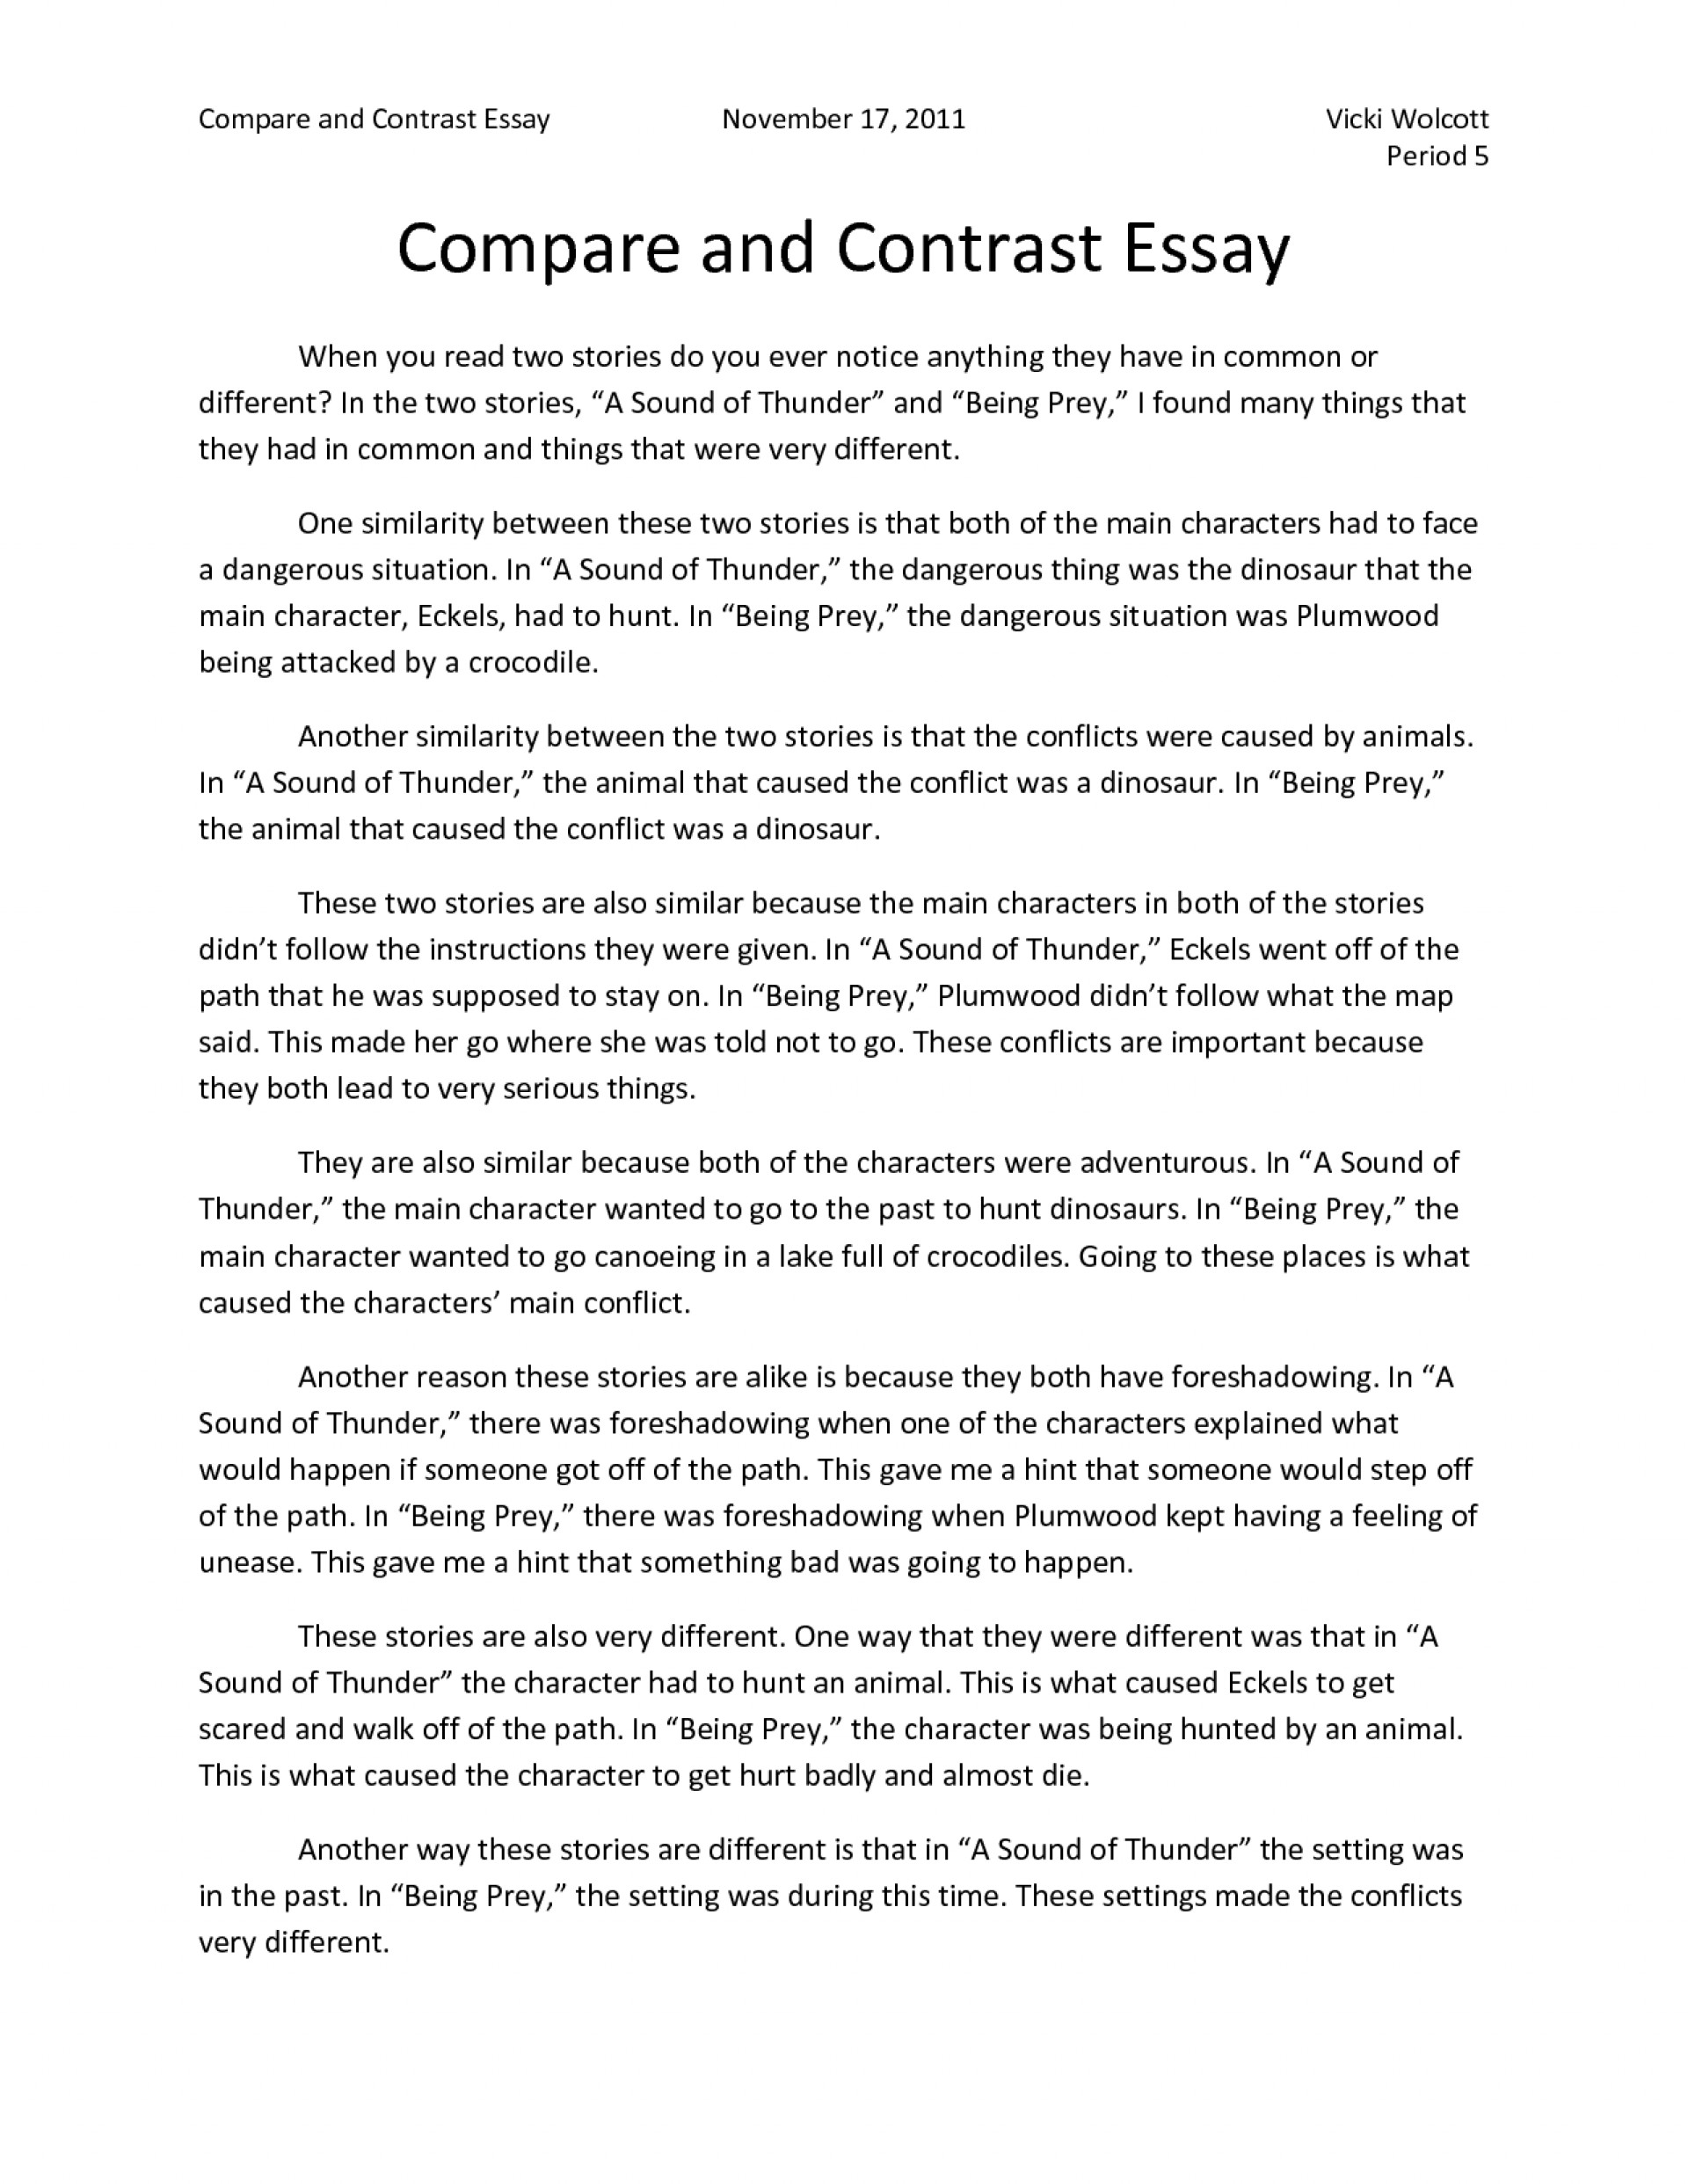 004 Essay Example Compare And Contrast Gallery Template Drawing Art Throughout College Examples Introduction Question Scholarship Free Edexcel Conclusion Frightening Topics Outline Doc Sample 4th Grade 1920